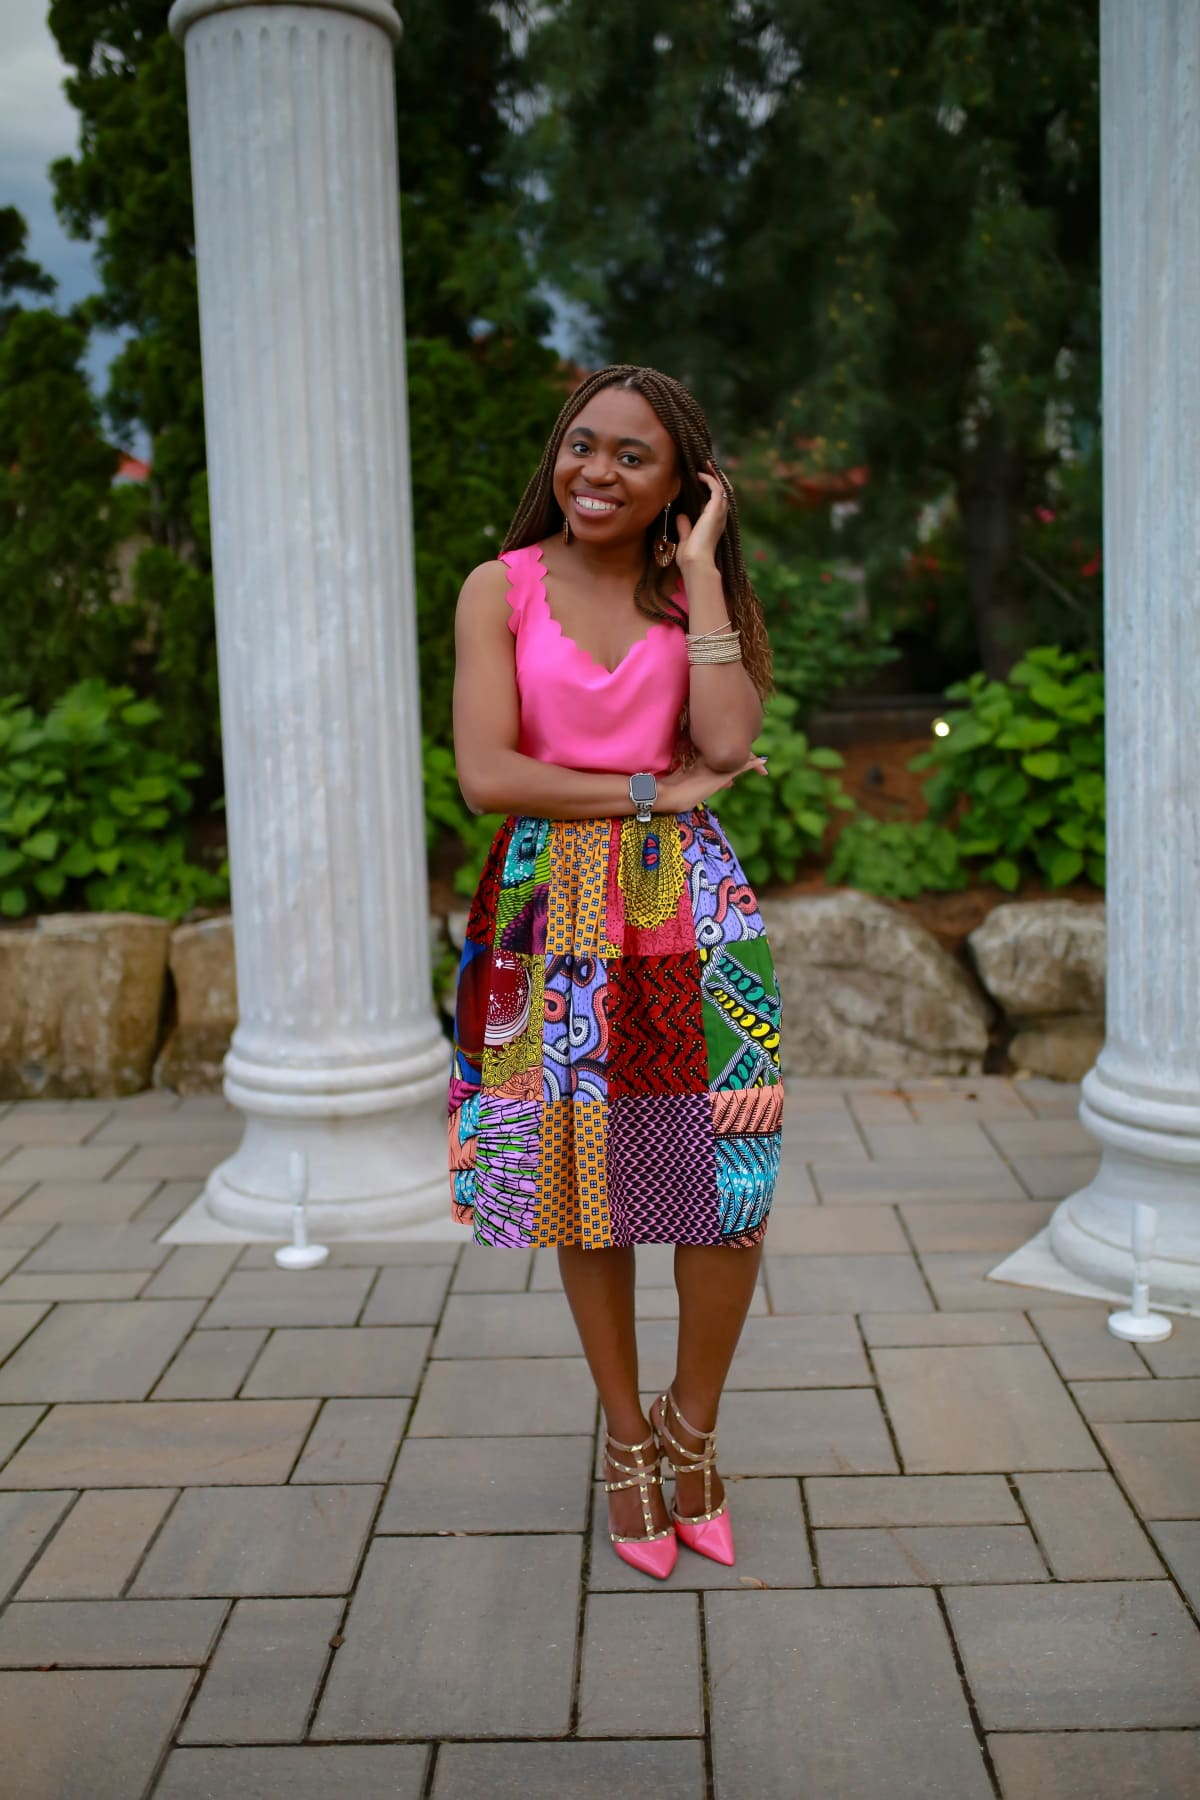 So shocked to discover five new ways to style one African midi skirt. And what's even more exciting is that this Amazon african print skirt is still available AND it's currently on sale. Plus it ships free with free returns/exchanges if needed.